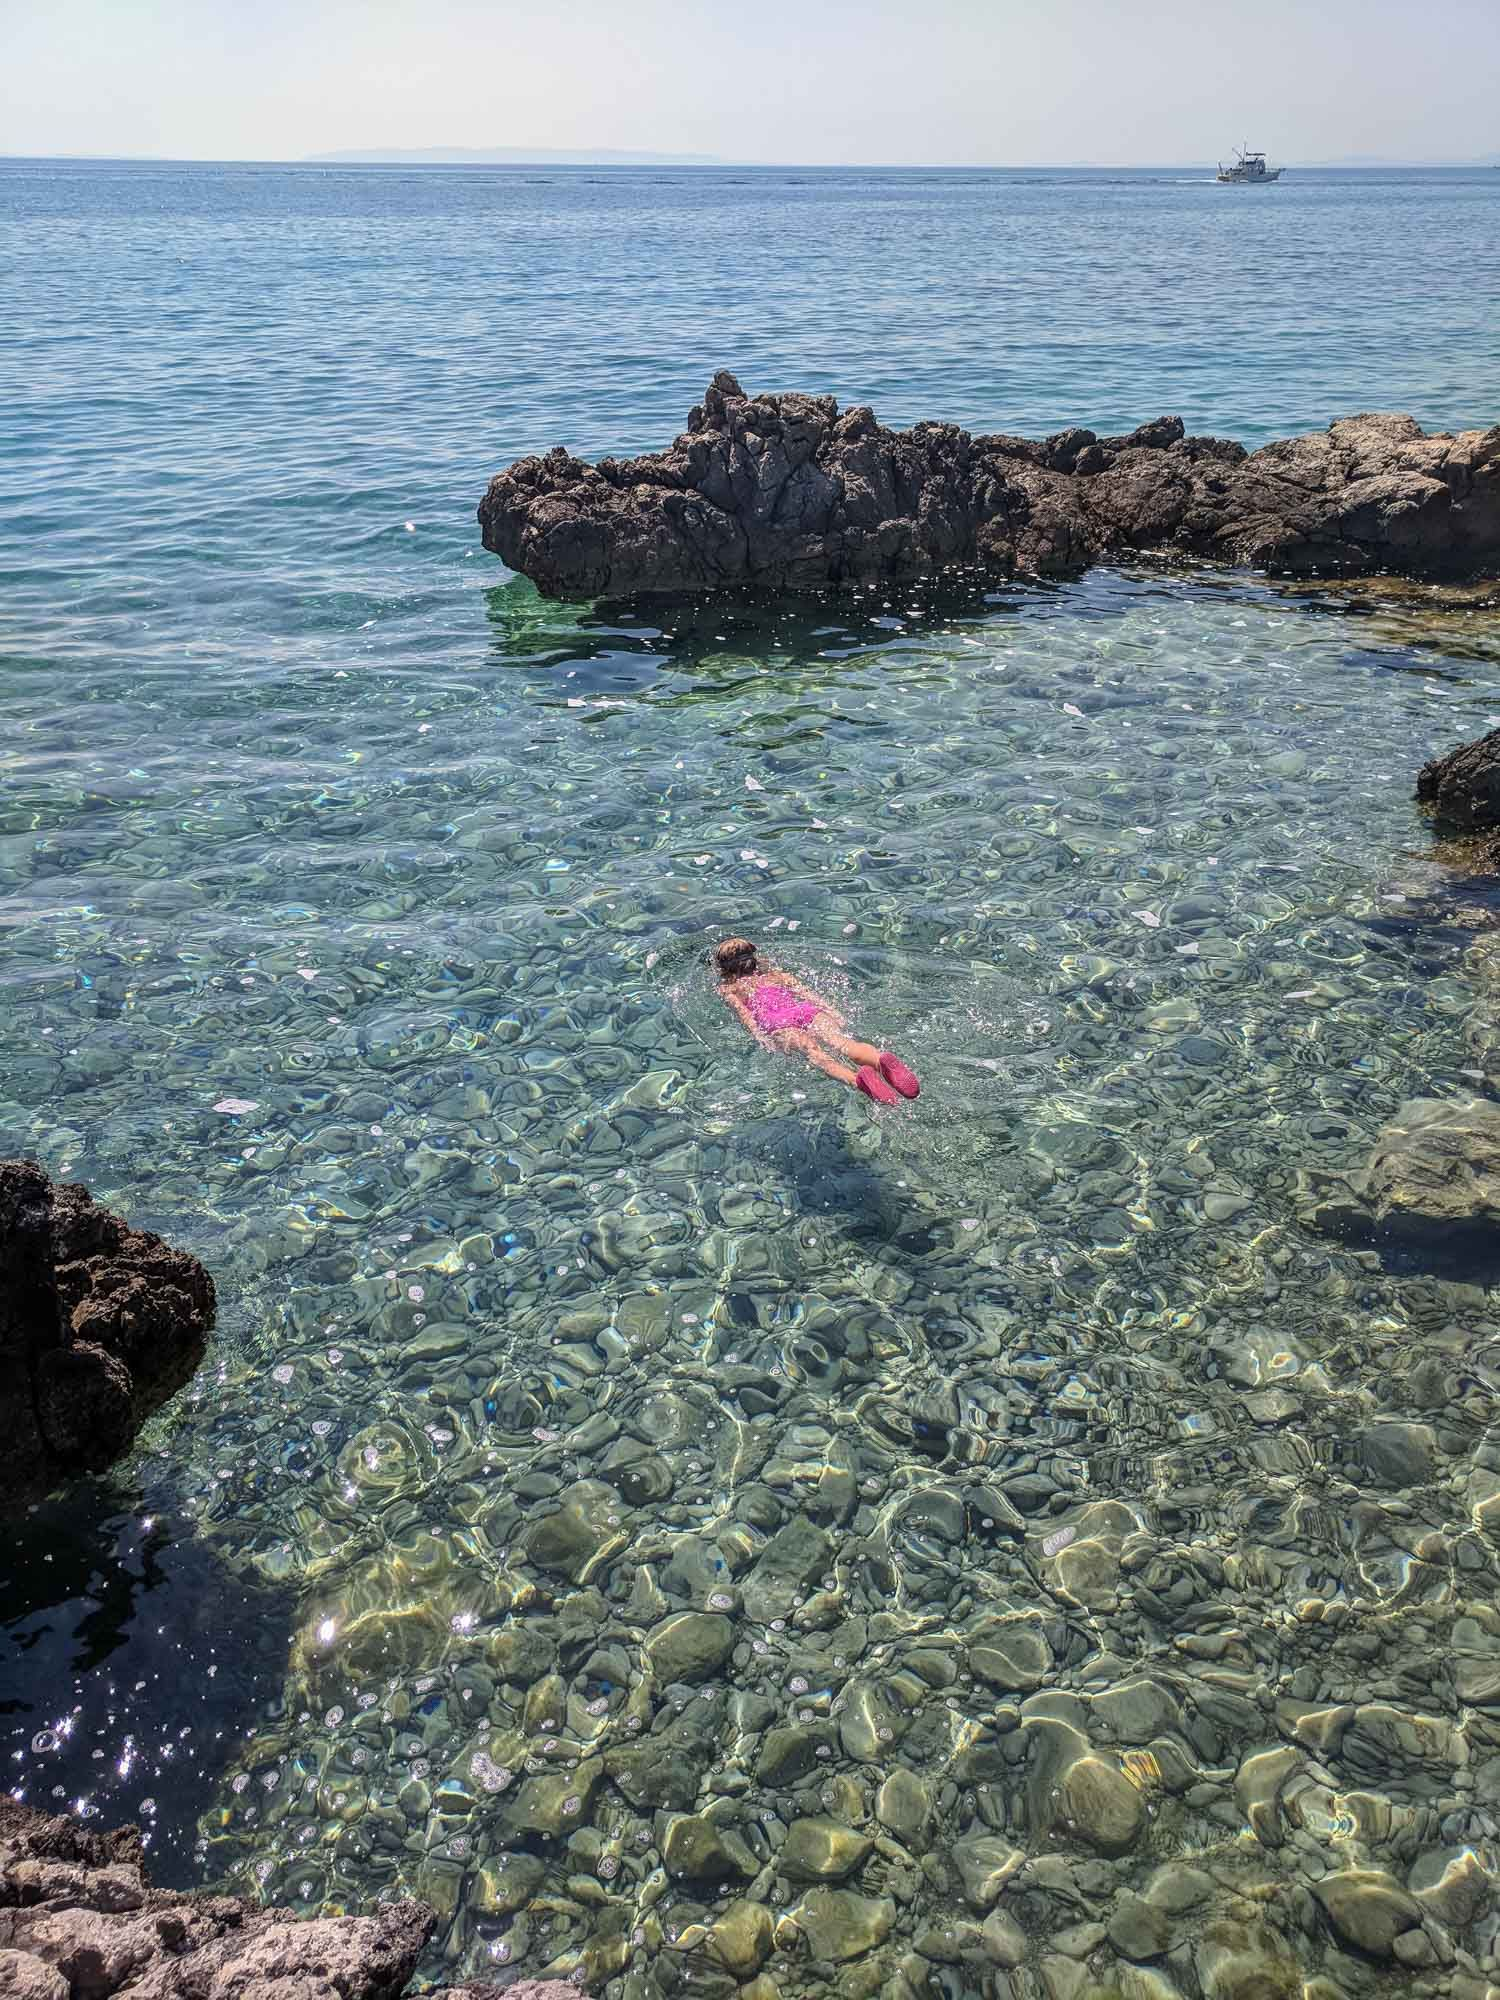 Best Pag Beaches For Kids. Croatian Island of Pag - Journey of a Nomadic Family